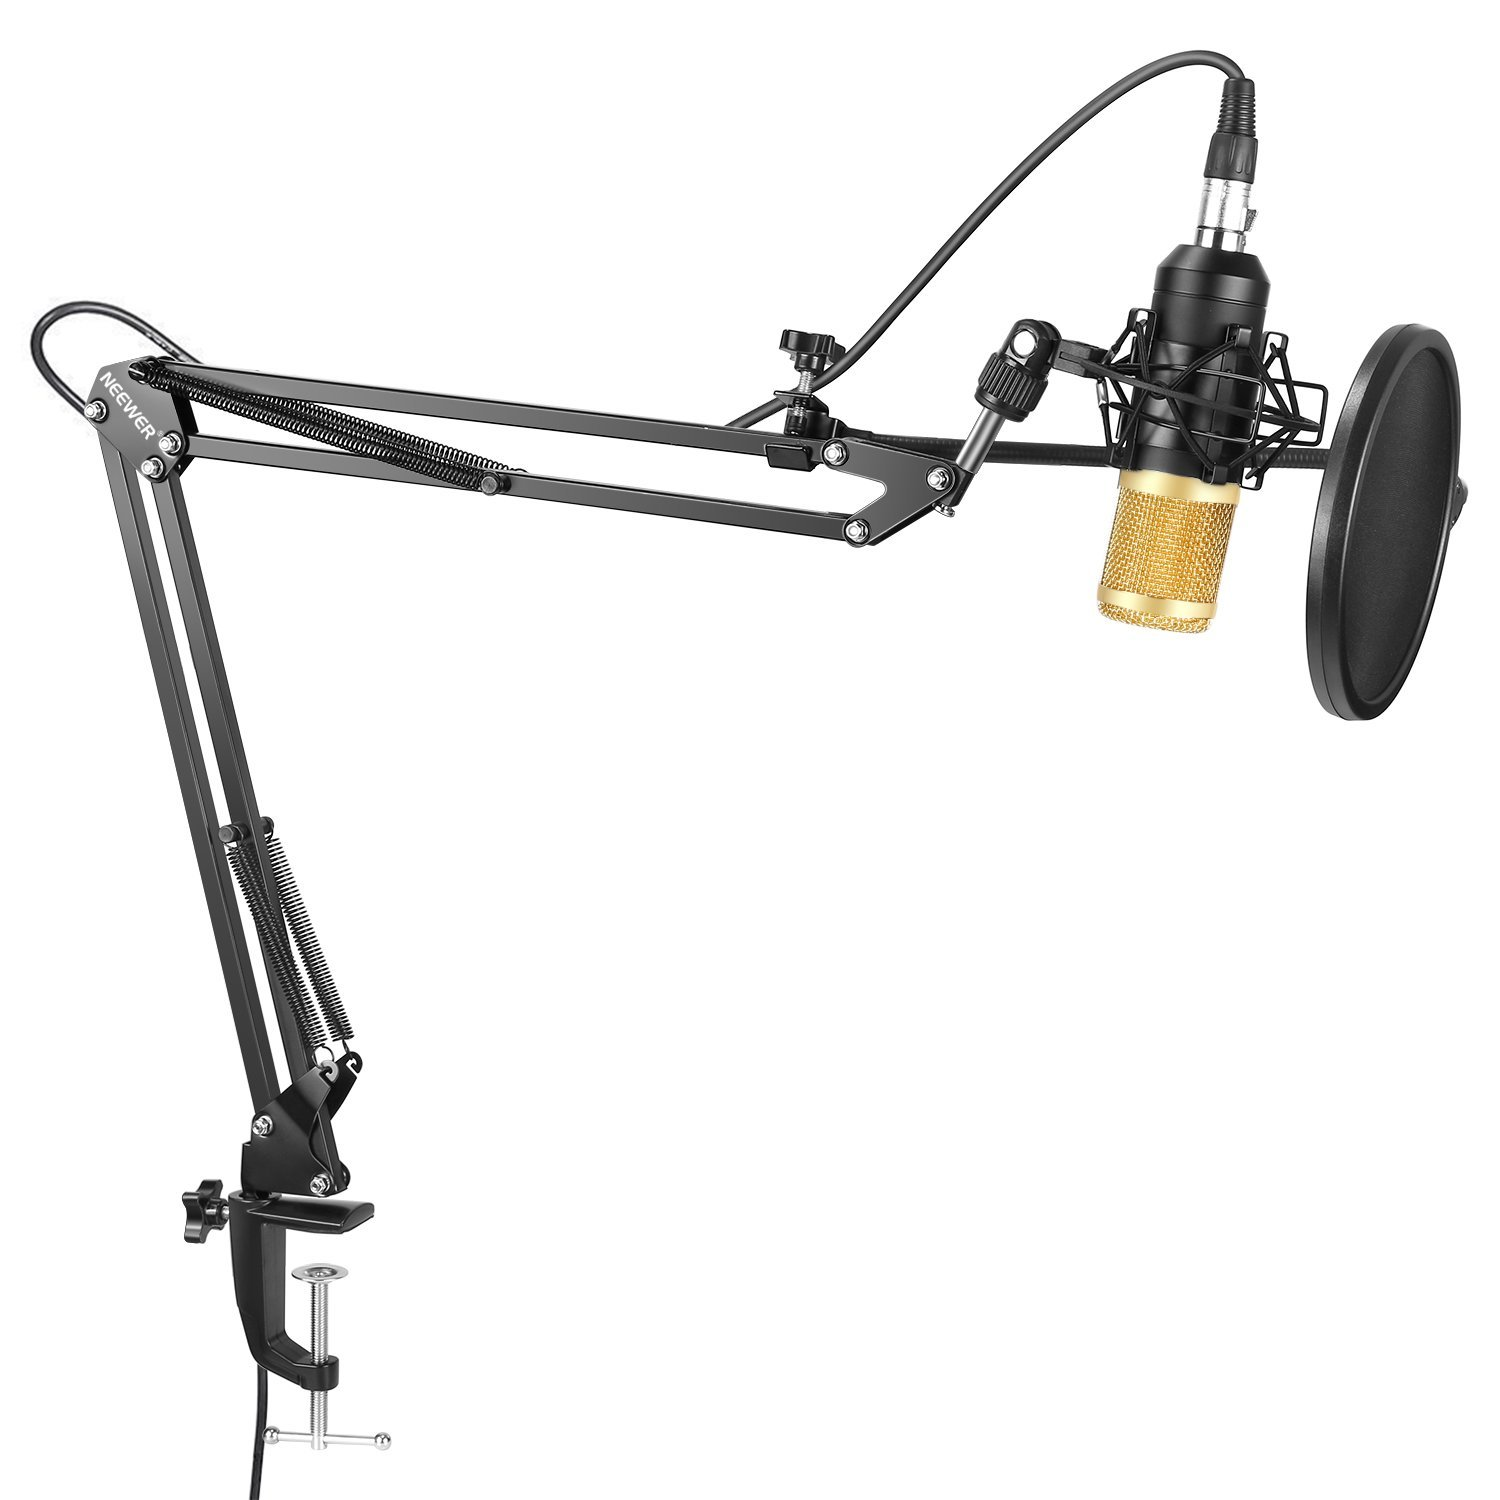 Neewer NW-8000 Professional Studio Condenser Microphone and Adjustable Suspension Scissor Arm Stand with Shock Mount, Pop Filter and Table Mounting Clamp Kit for Broadcasting and Sound Recording by Neewer